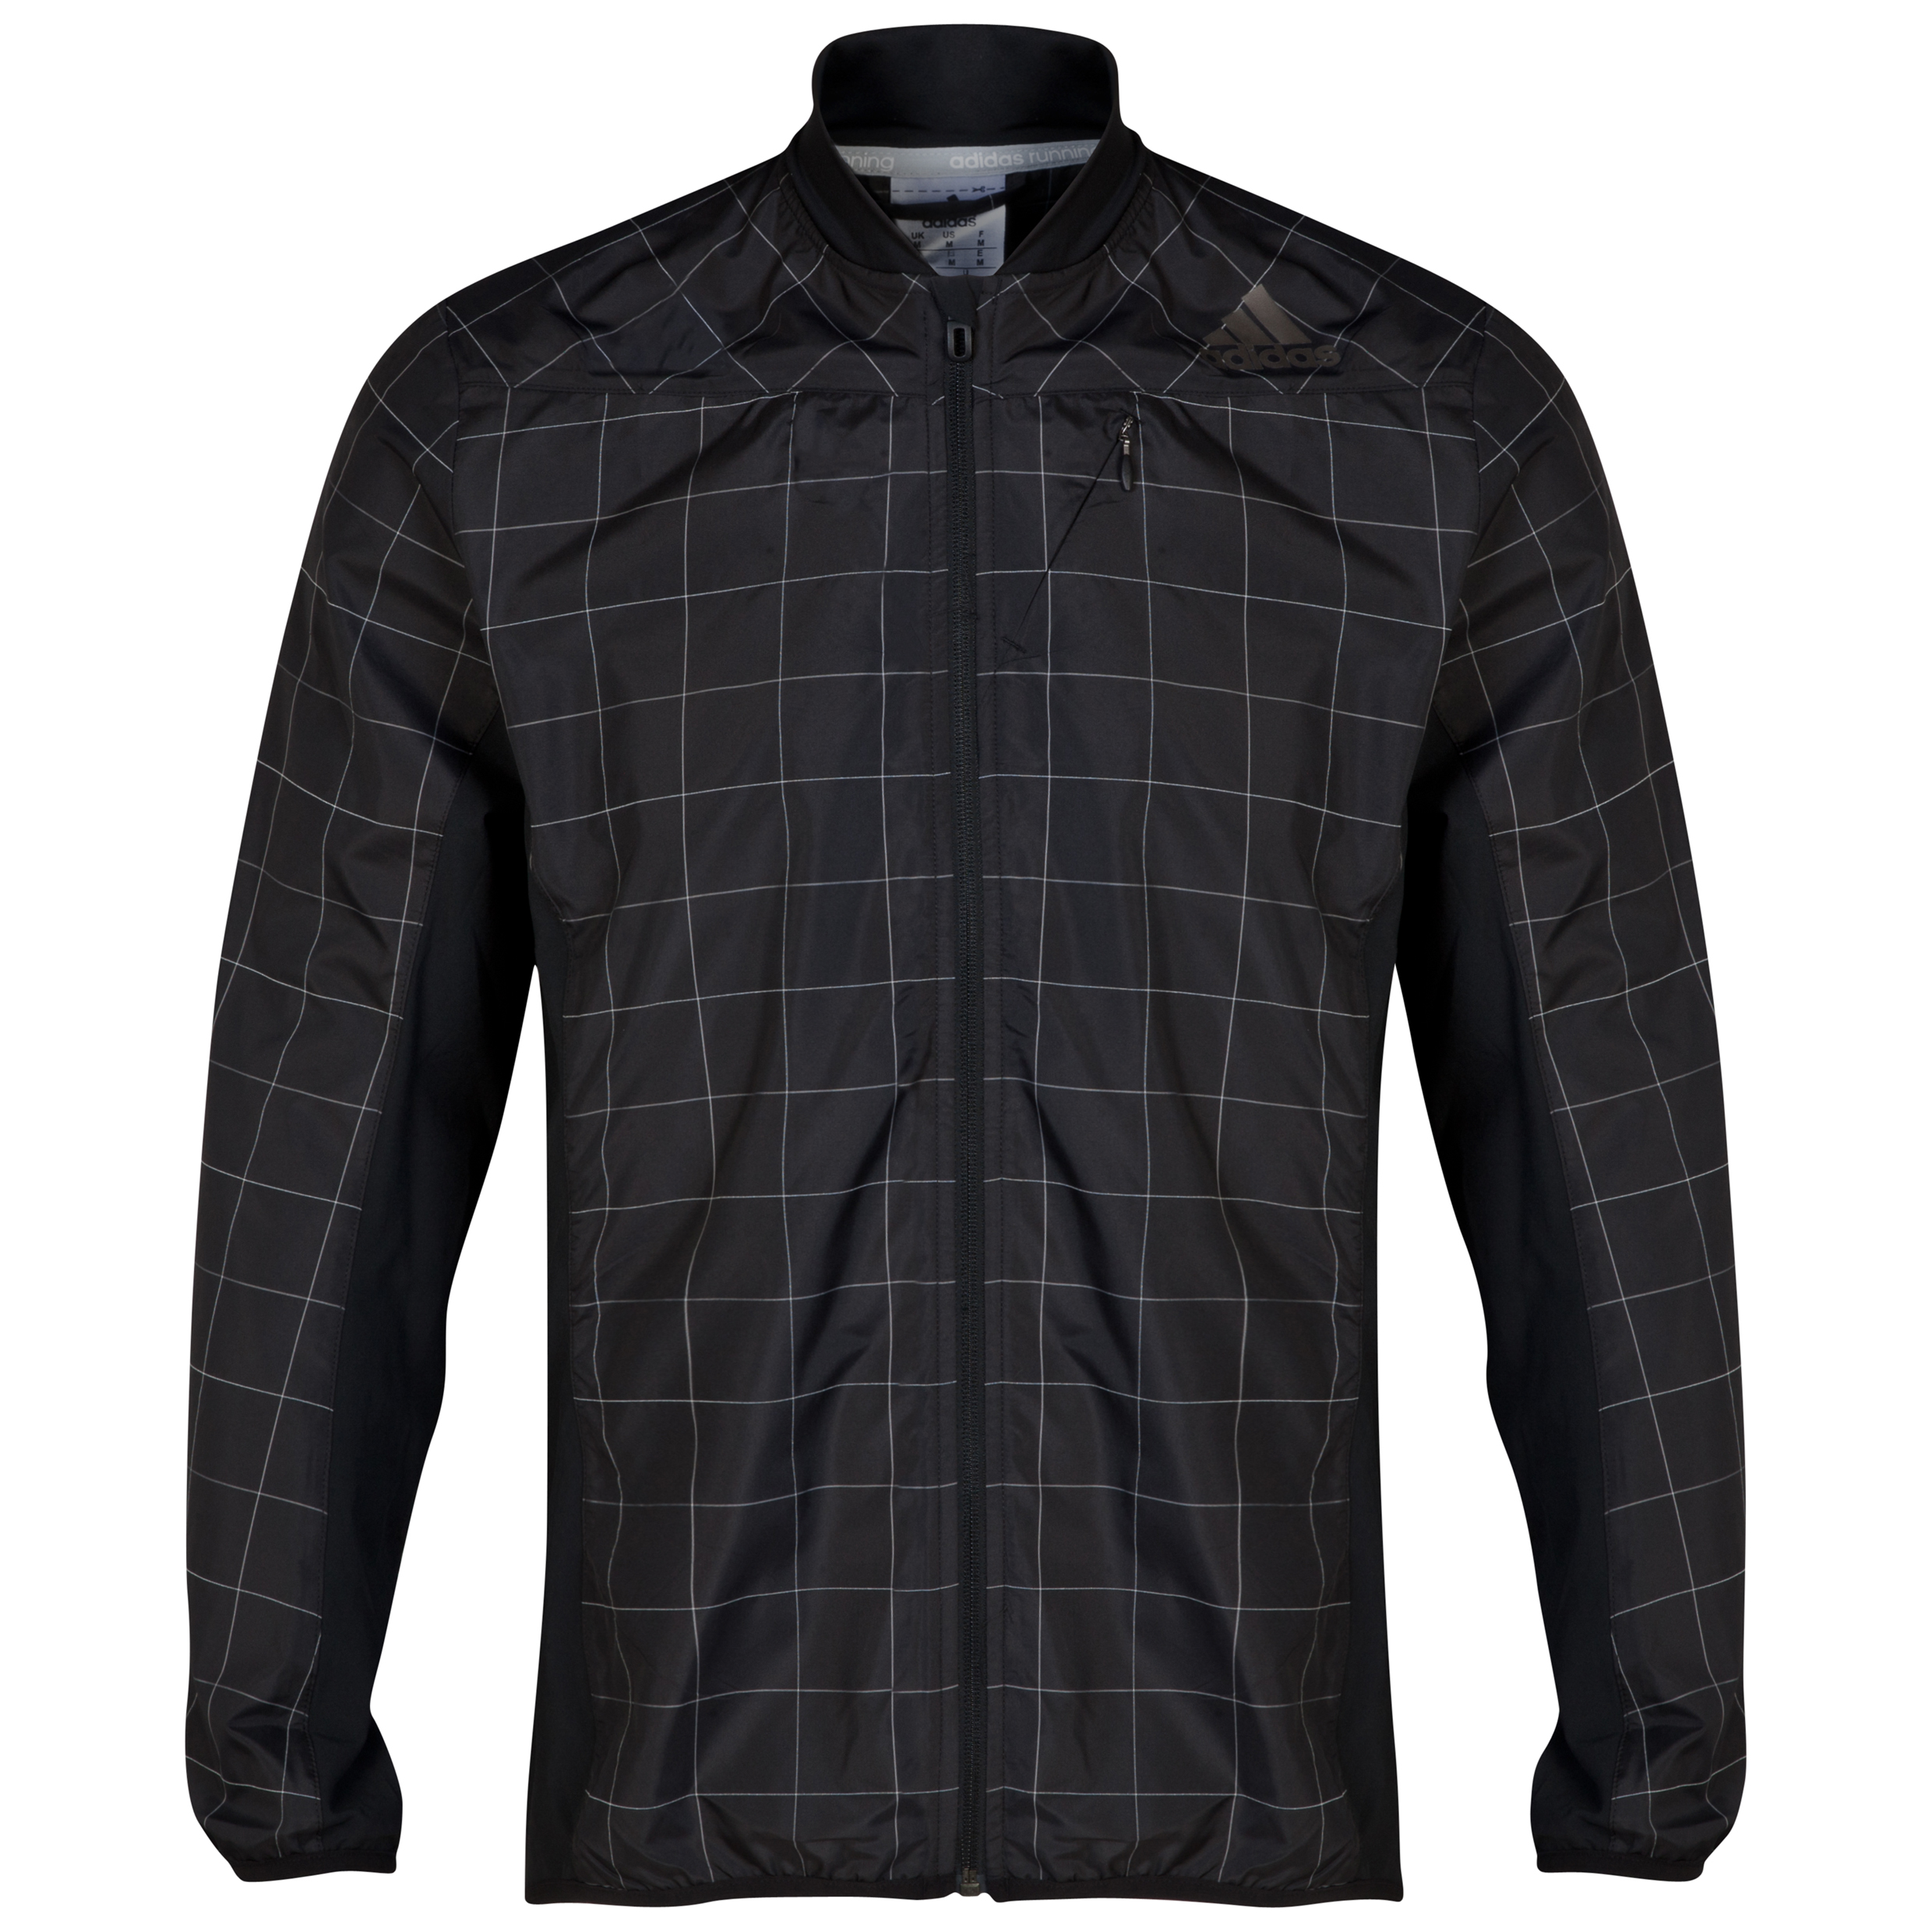 Adidas Supernova Smart Jacket - Black/Night Shade Black